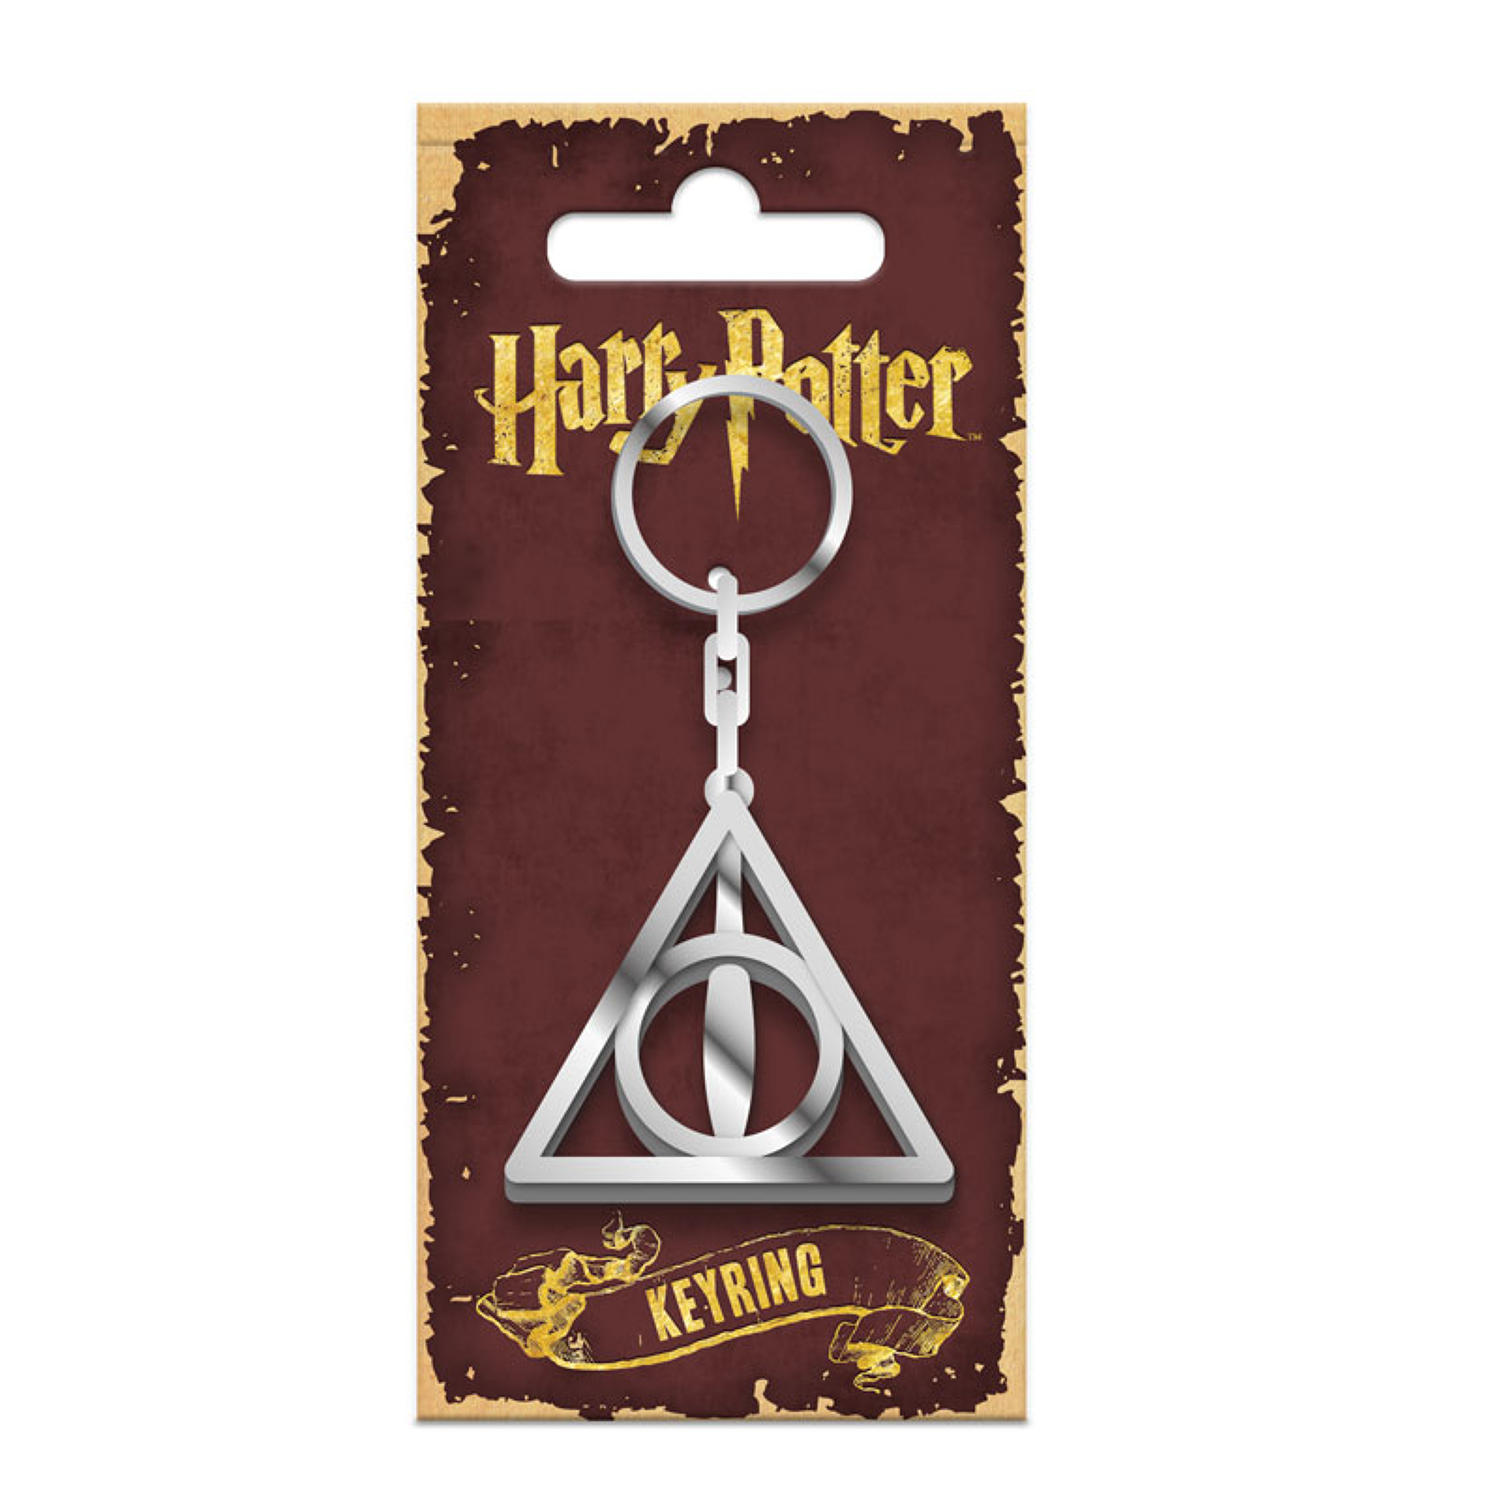 Harry Potter Key Ring (Deathly Hallows)